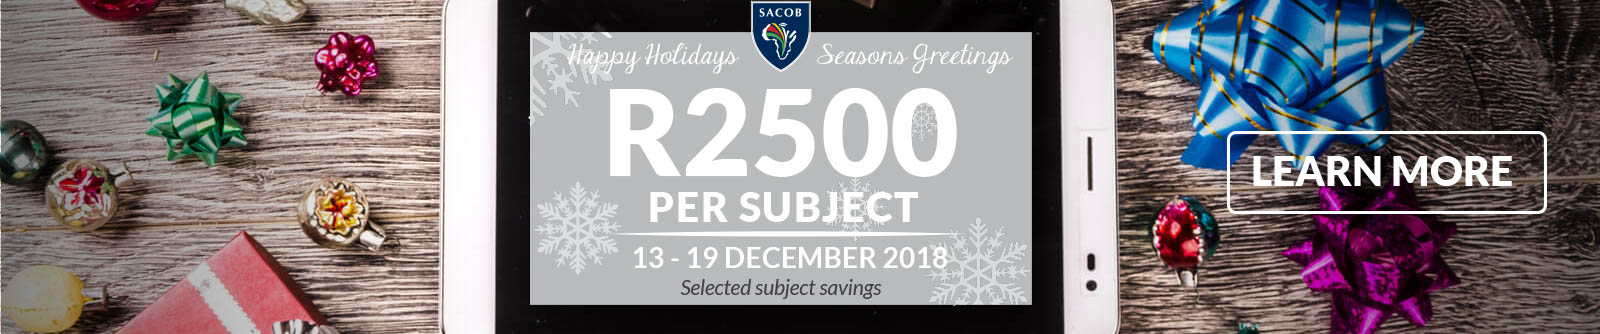 2018 Holiday Promotion